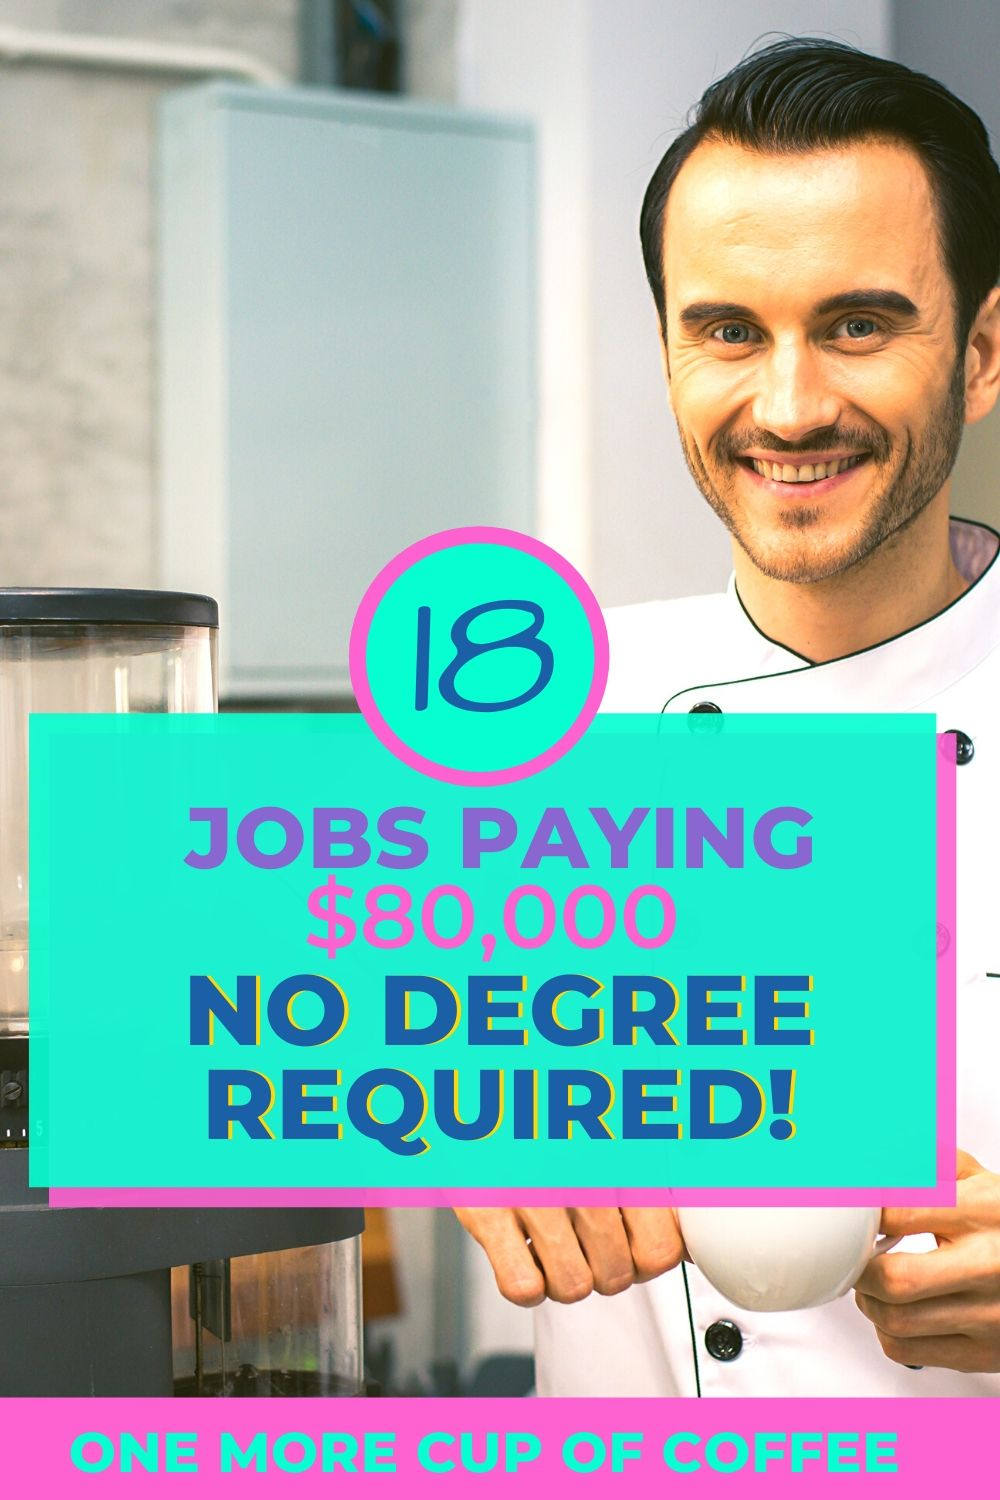 Chef smiling representing jobs paying $80K with no degree required.